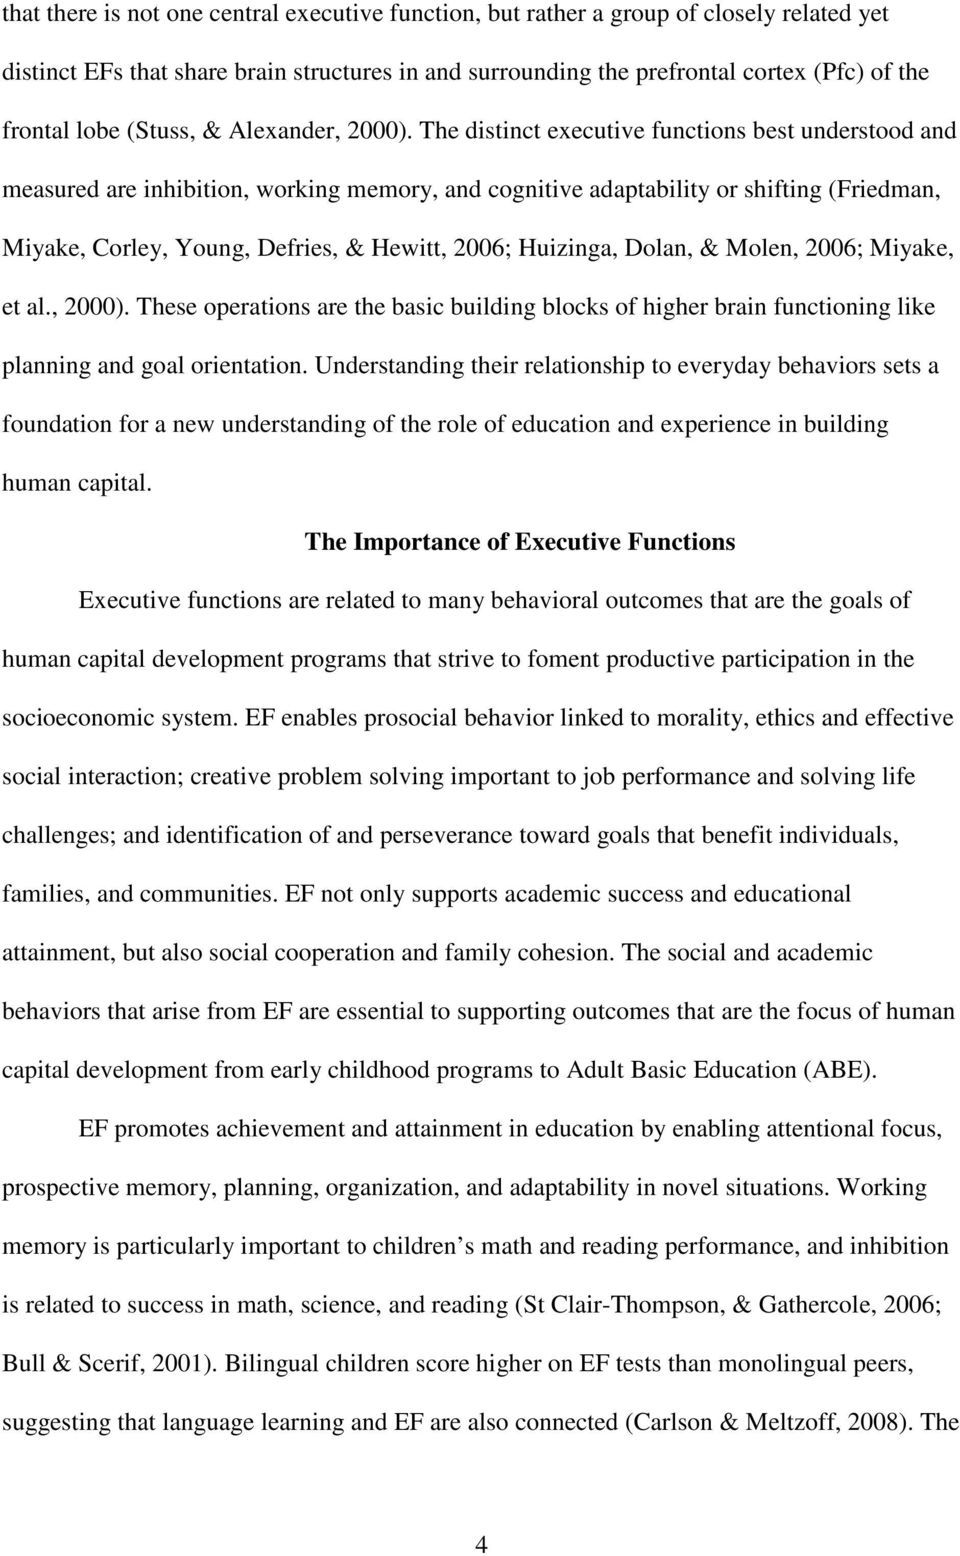 The distinct executive functions best understood and measured are inhibition, working memory, and cognitive adaptability or shifting (Friedman, Miyake, Corley, Young, Defries, & Hewitt, 2006;